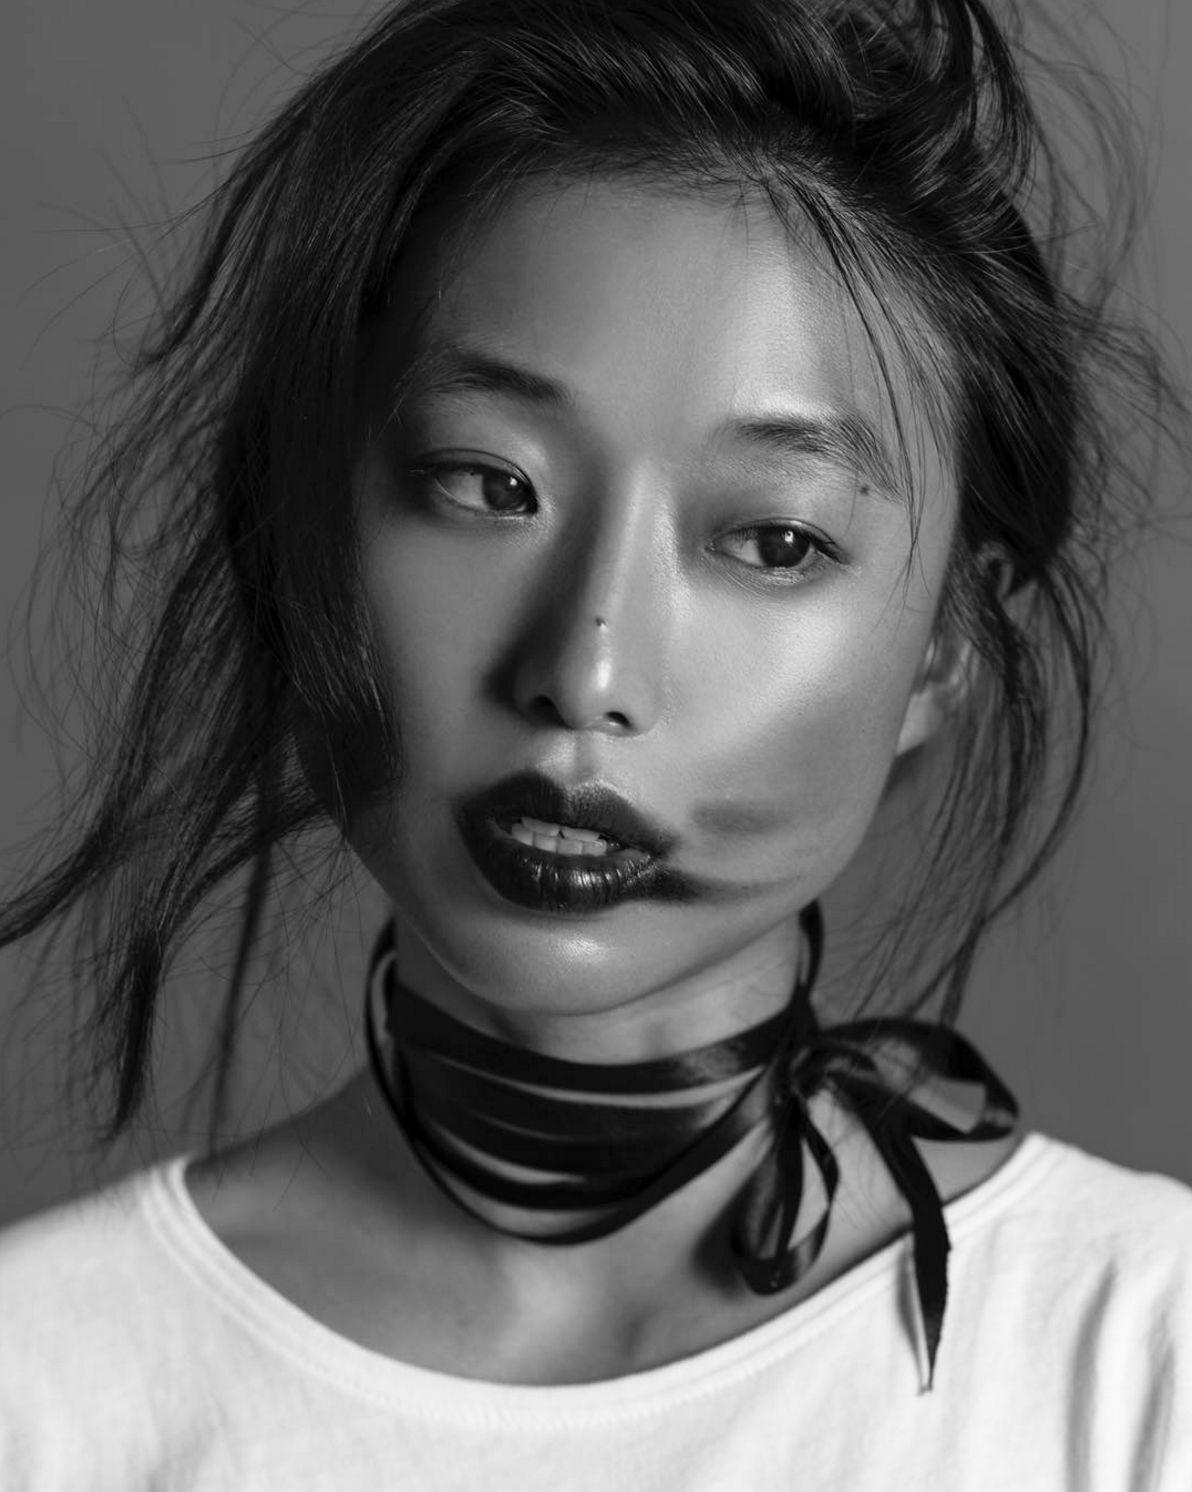 """<p><strong>The Dishevelled Updo</strong></p> <p>Photographer, stylist, blogger, law graduate and social media sensation <a href=""""https://www.instagram.com/margaret__zhang/"""" rel=""""nofollow noopener"""" target=""""_blank"""" data-ylk=""""slk:Margaret Zhang"""" class=""""link rapid-noclick-resp"""">Margaret Zhang</a> can do no wrong. Evidently a woman of many talents, Zhang always has picture-perfect hair. We love this un-done updo, replete with typically unwelcome flyaways.</p> <span class=""""copyright"""">Photo: via @margaret__zhang.</span>"""